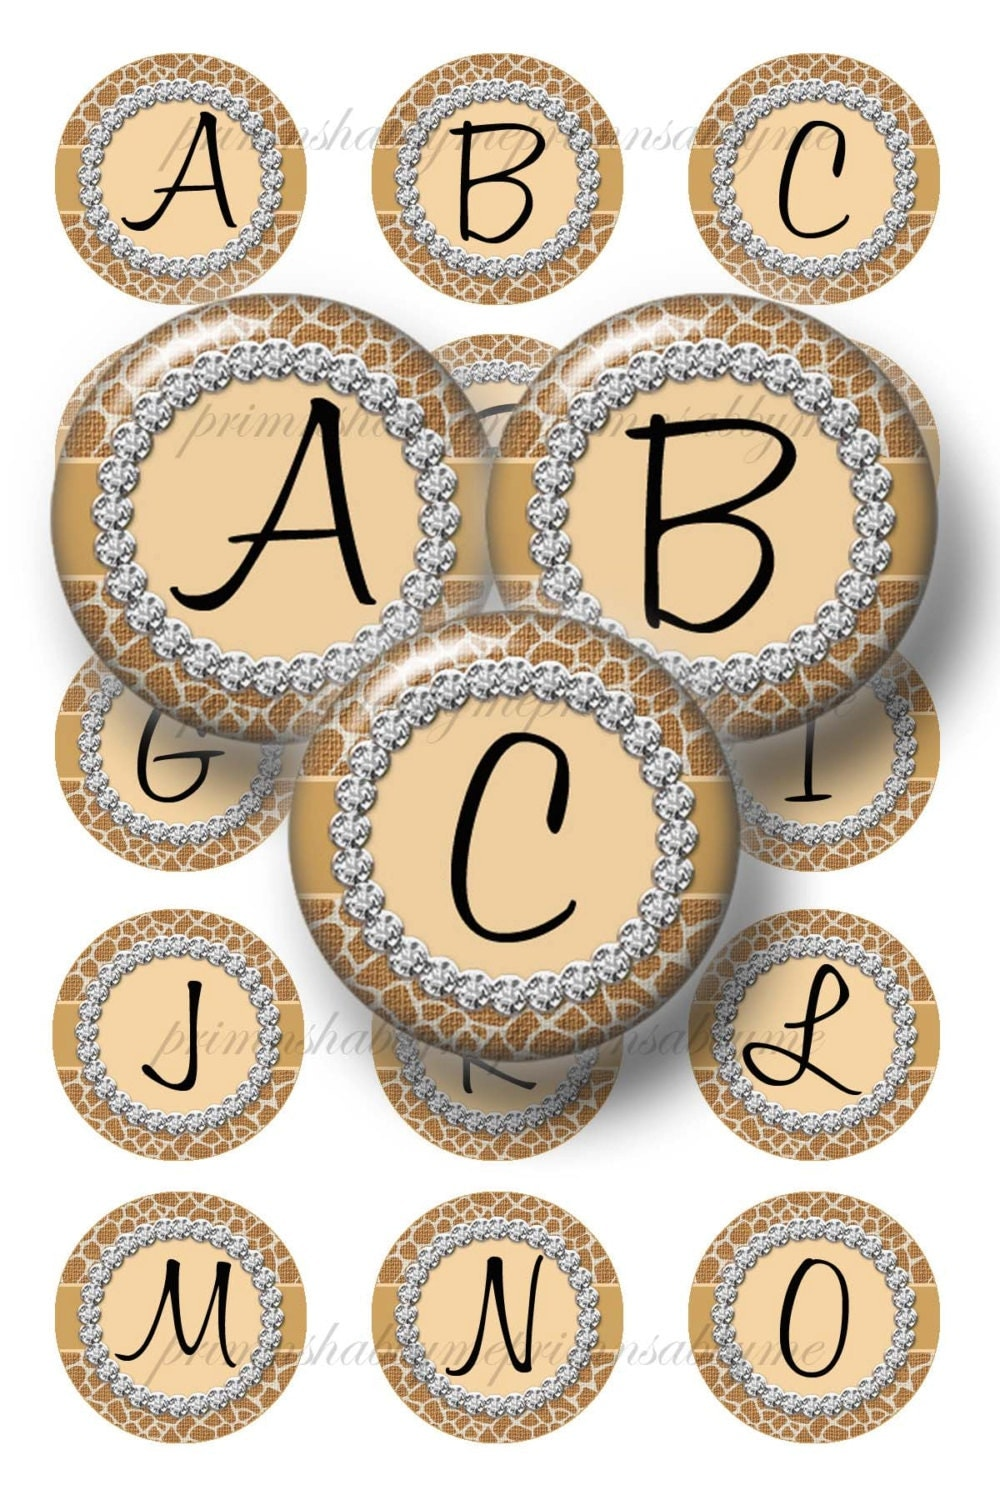 Alphabet letters 1 inch circle bottle cap images digital for 1 inch letters